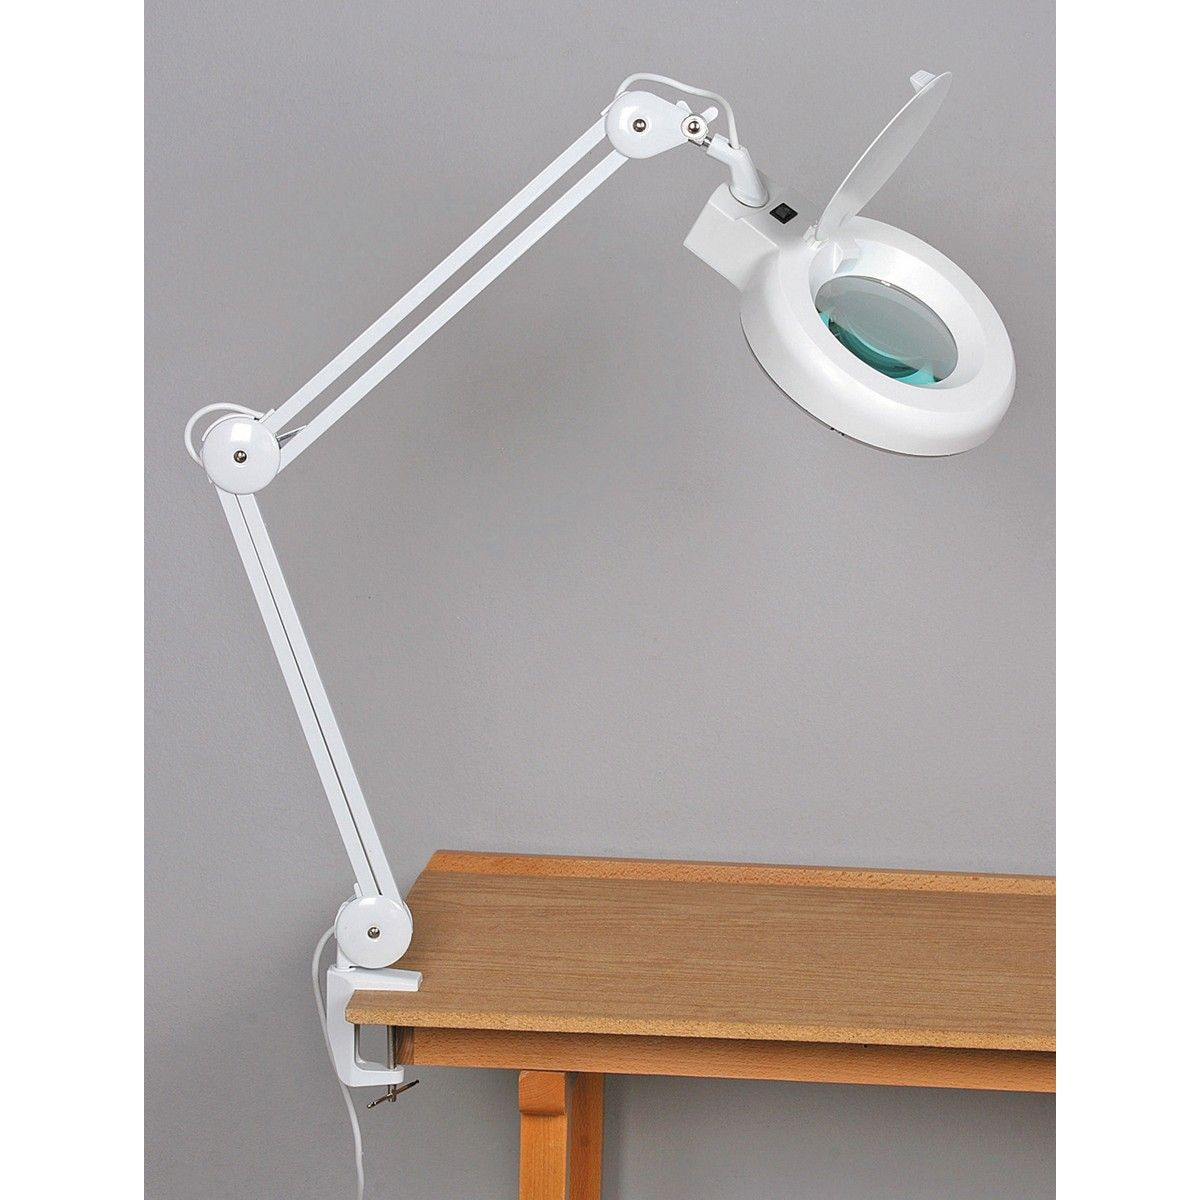 Fluorescent magnifying lamp this harbor freight 22w got all 5 fluorescent magnifying lamp desk lamptable lampsminiature geotapseo Choice Image